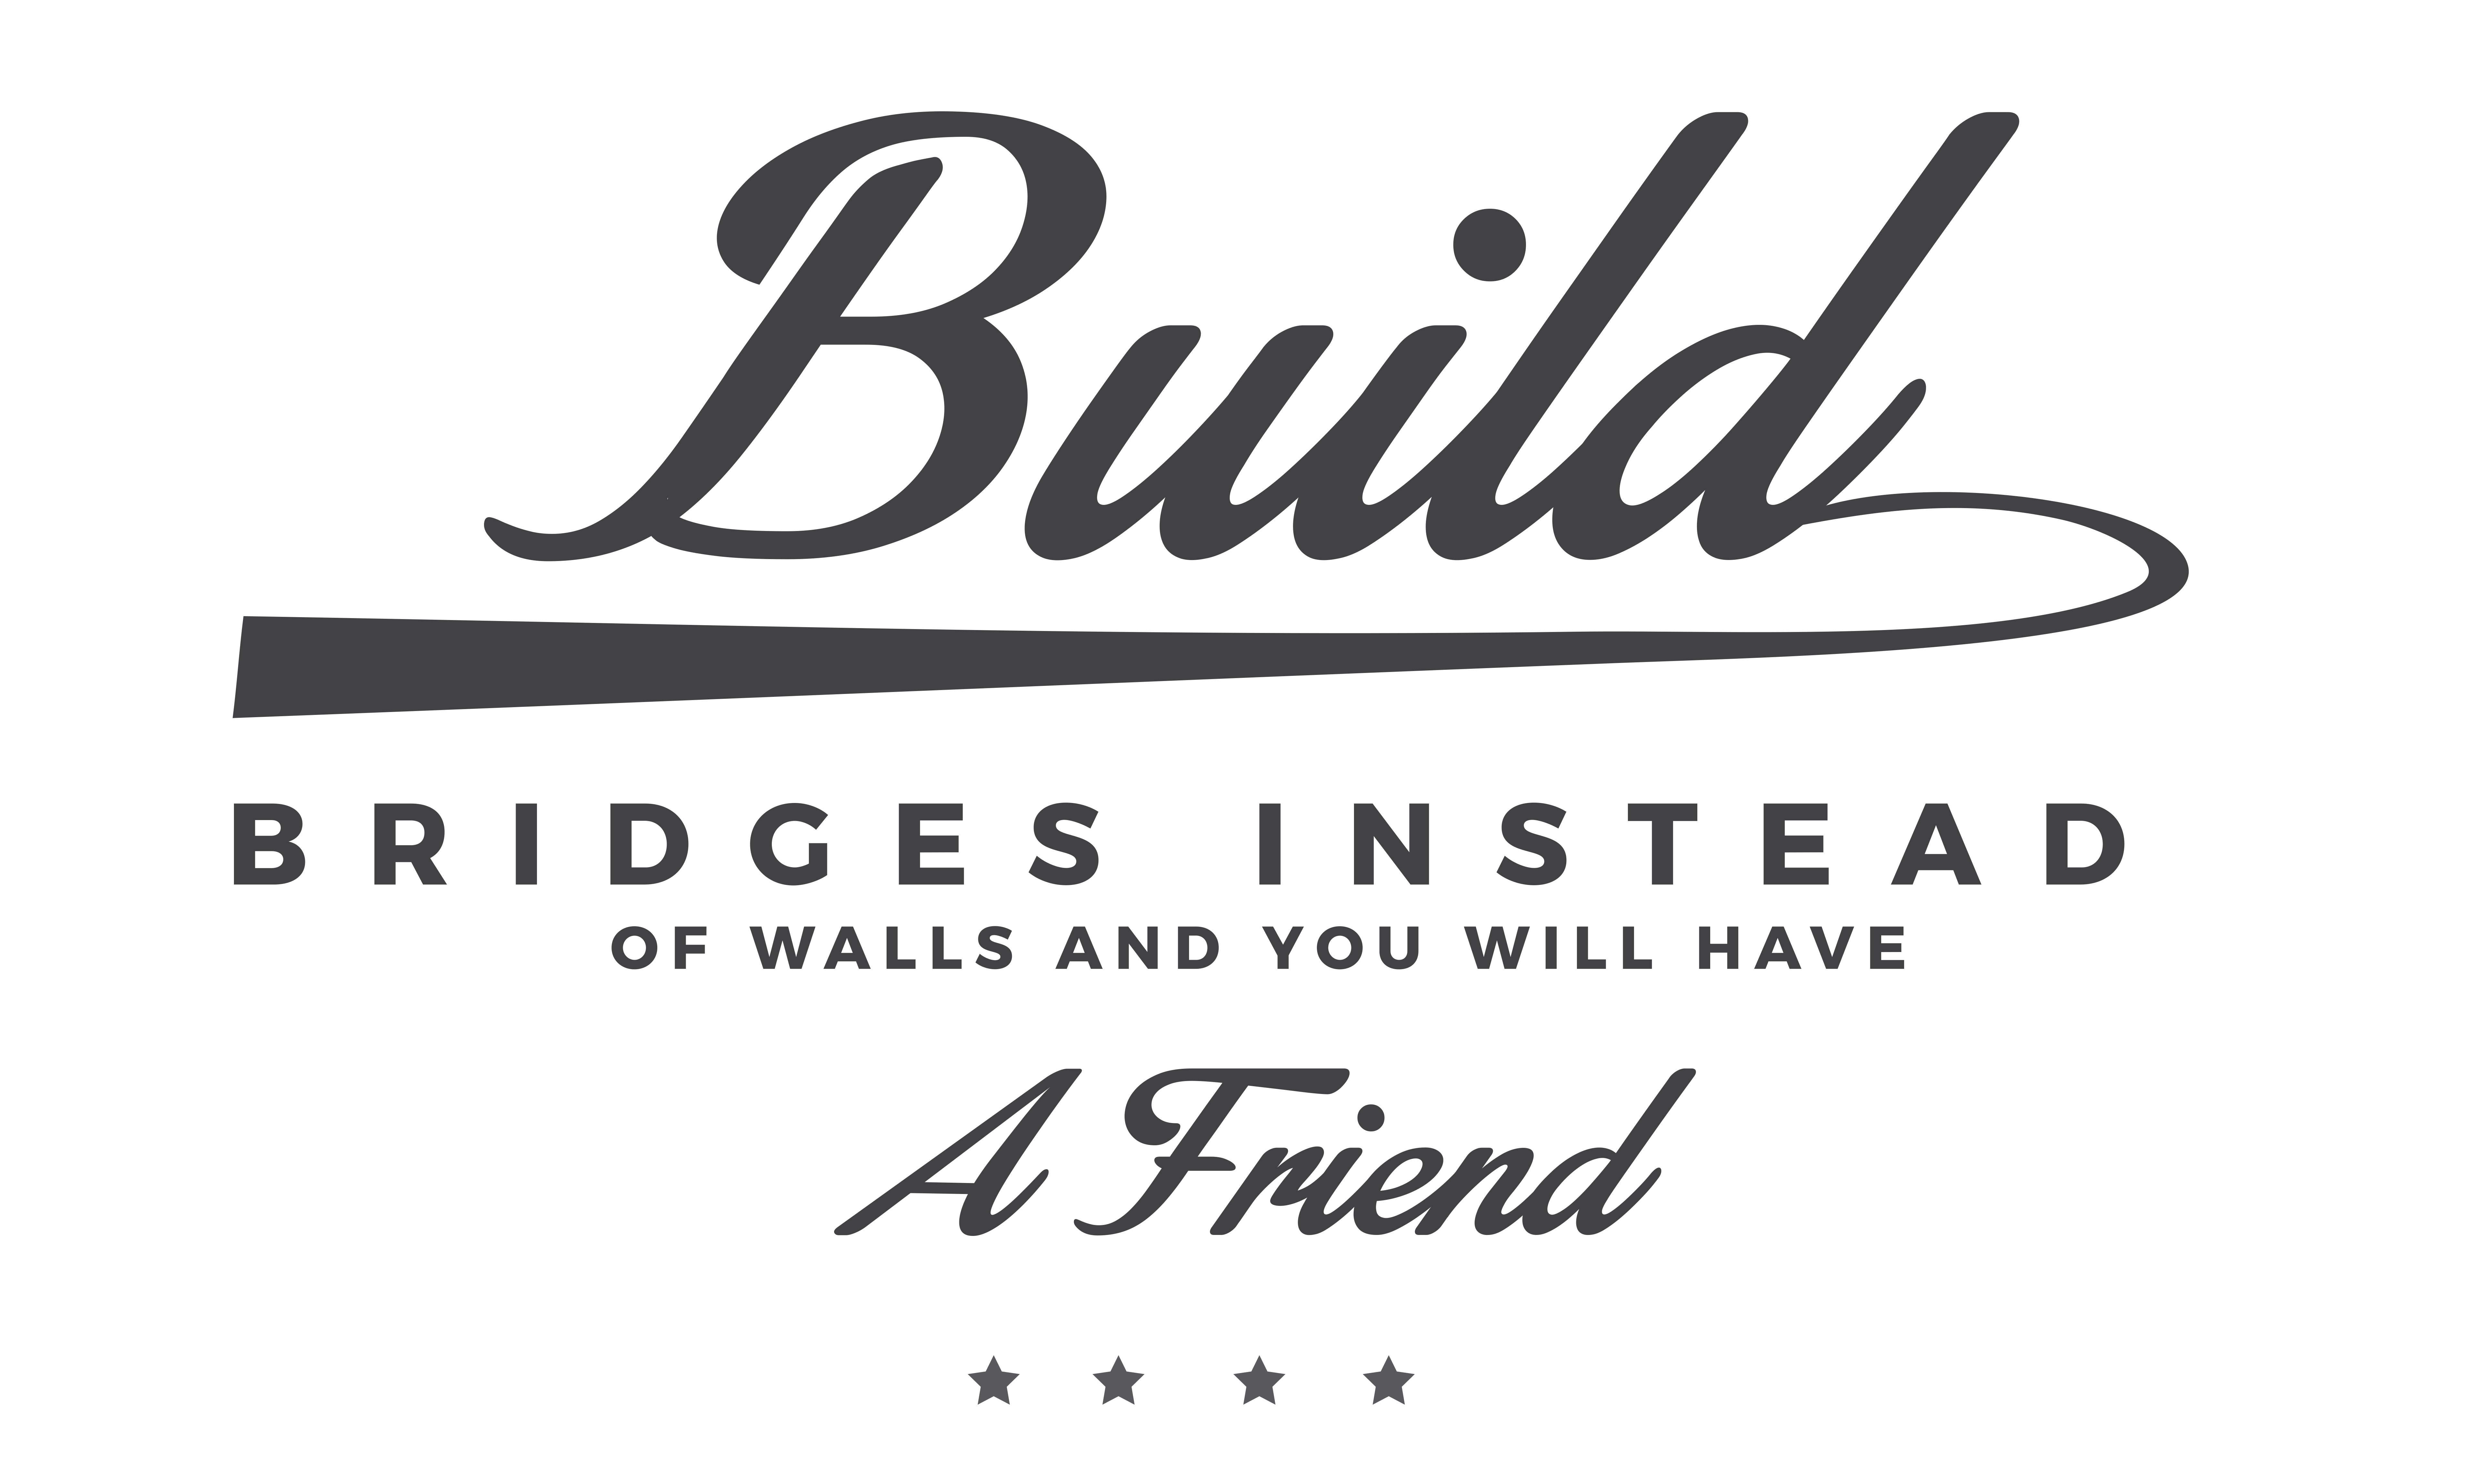 Download Free You Will Have A Friend Graphic By Baraeiji Creative Fabrica for Cricut Explore, Silhouette and other cutting machines.